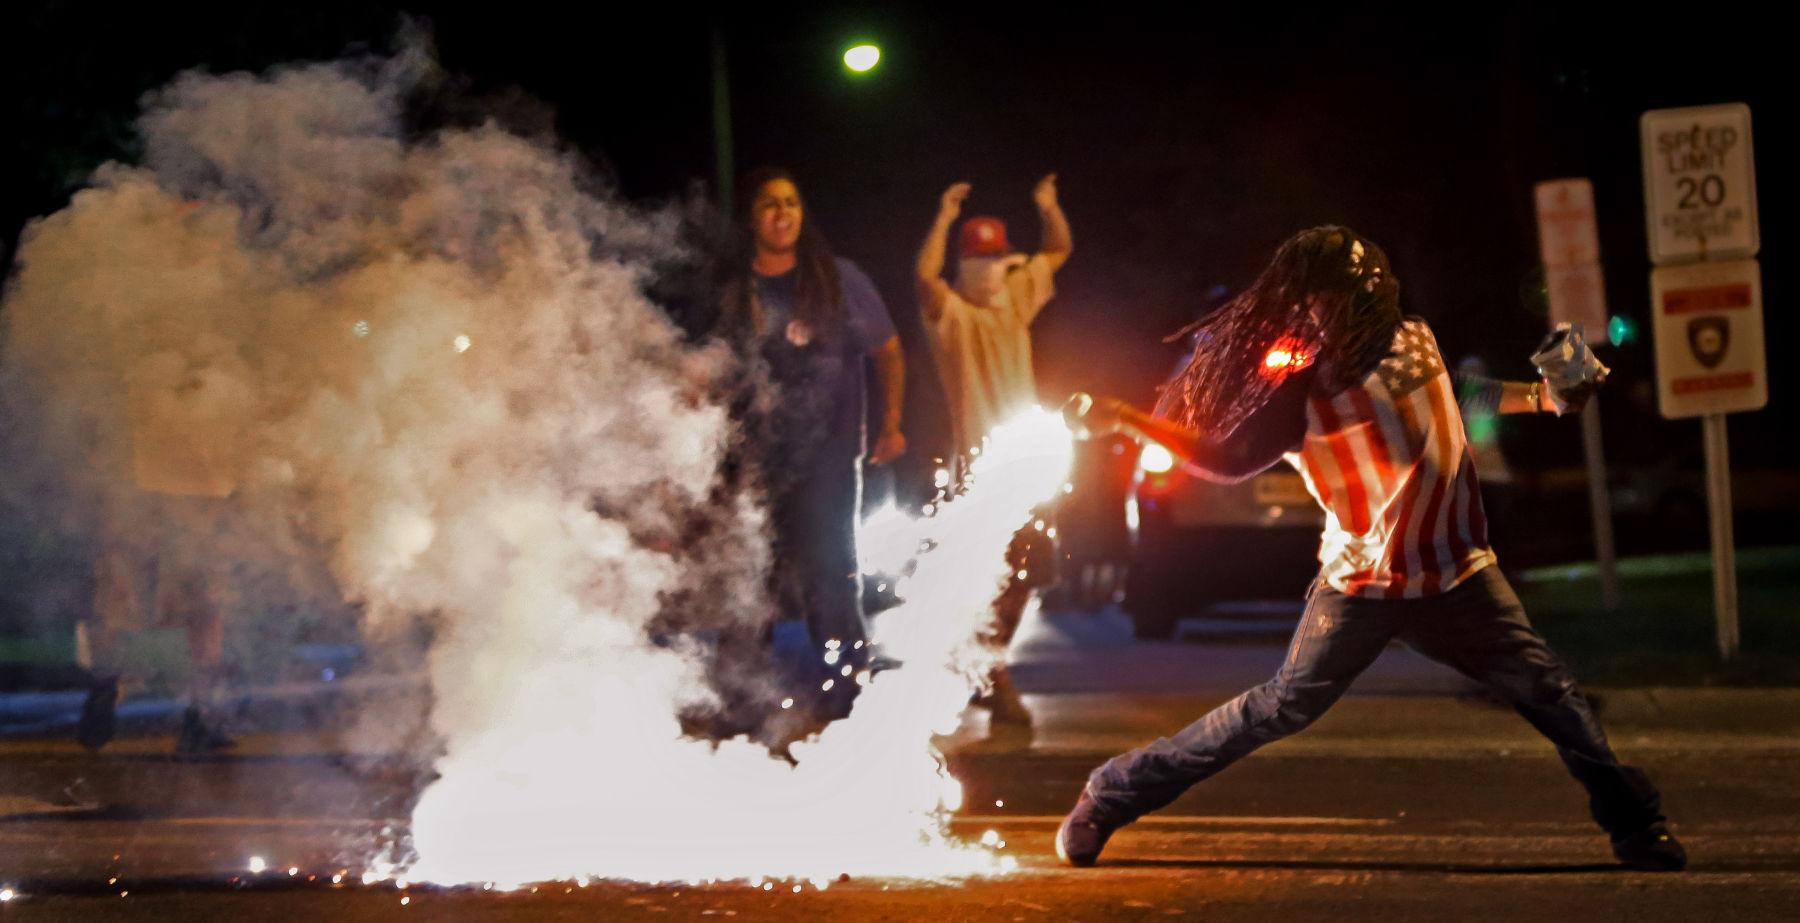 Edward Crawford, wearing an American flag T-shirt, picks up a smoking tear gas canister, and begins to throw it back toward police.